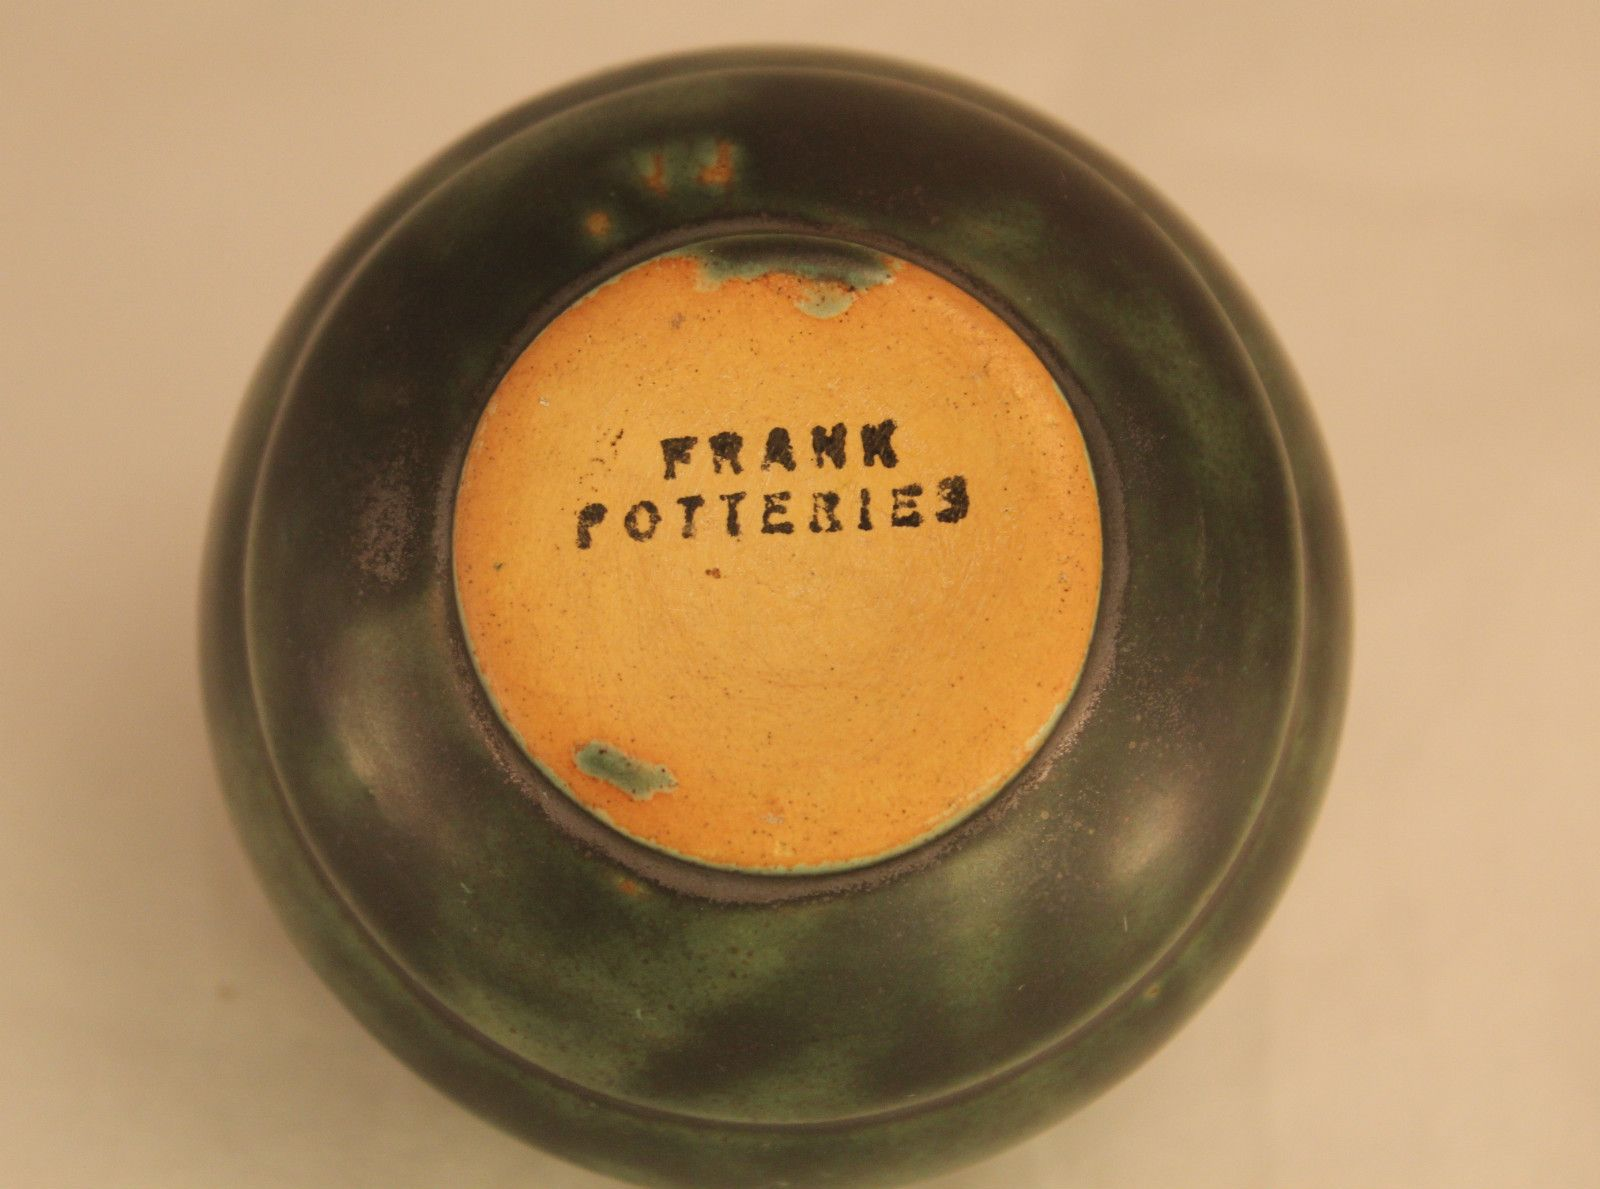 Frank potteries dating your pottery